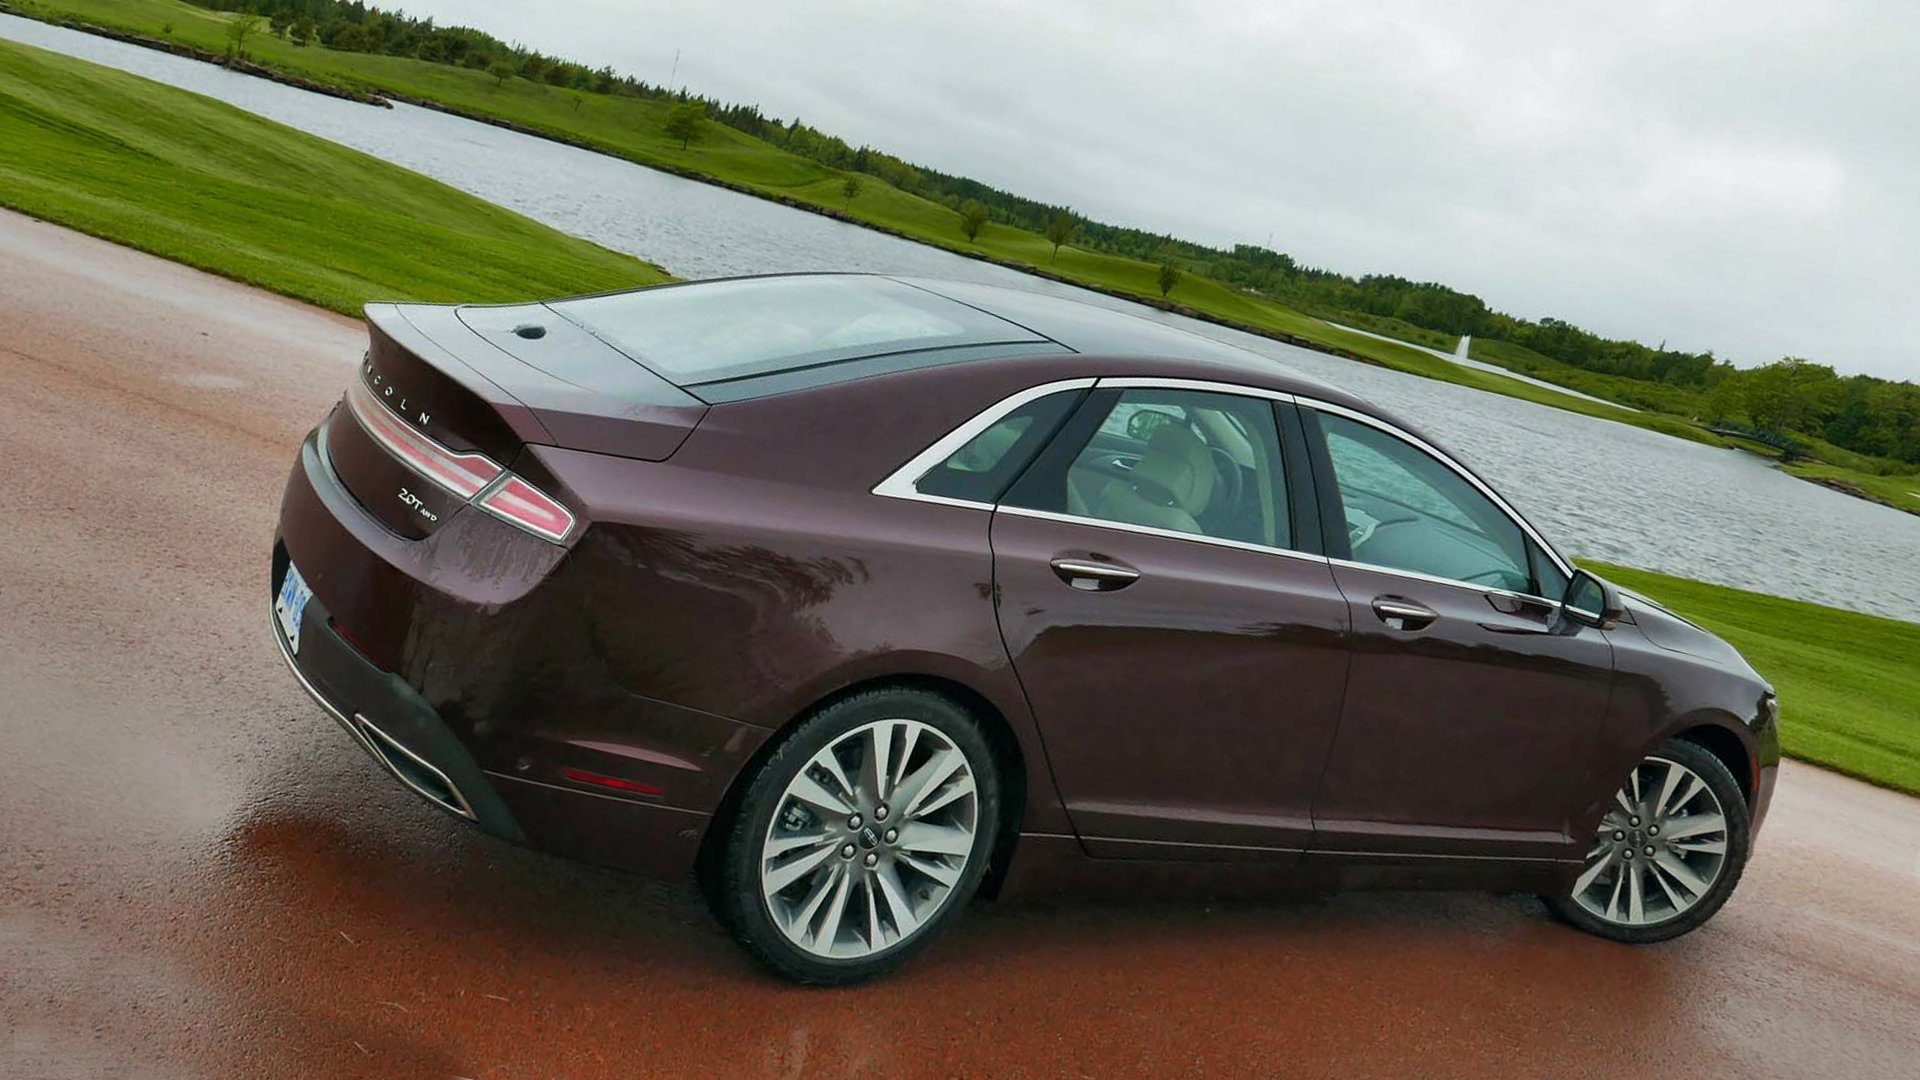 Lincoln MKZ Images HD